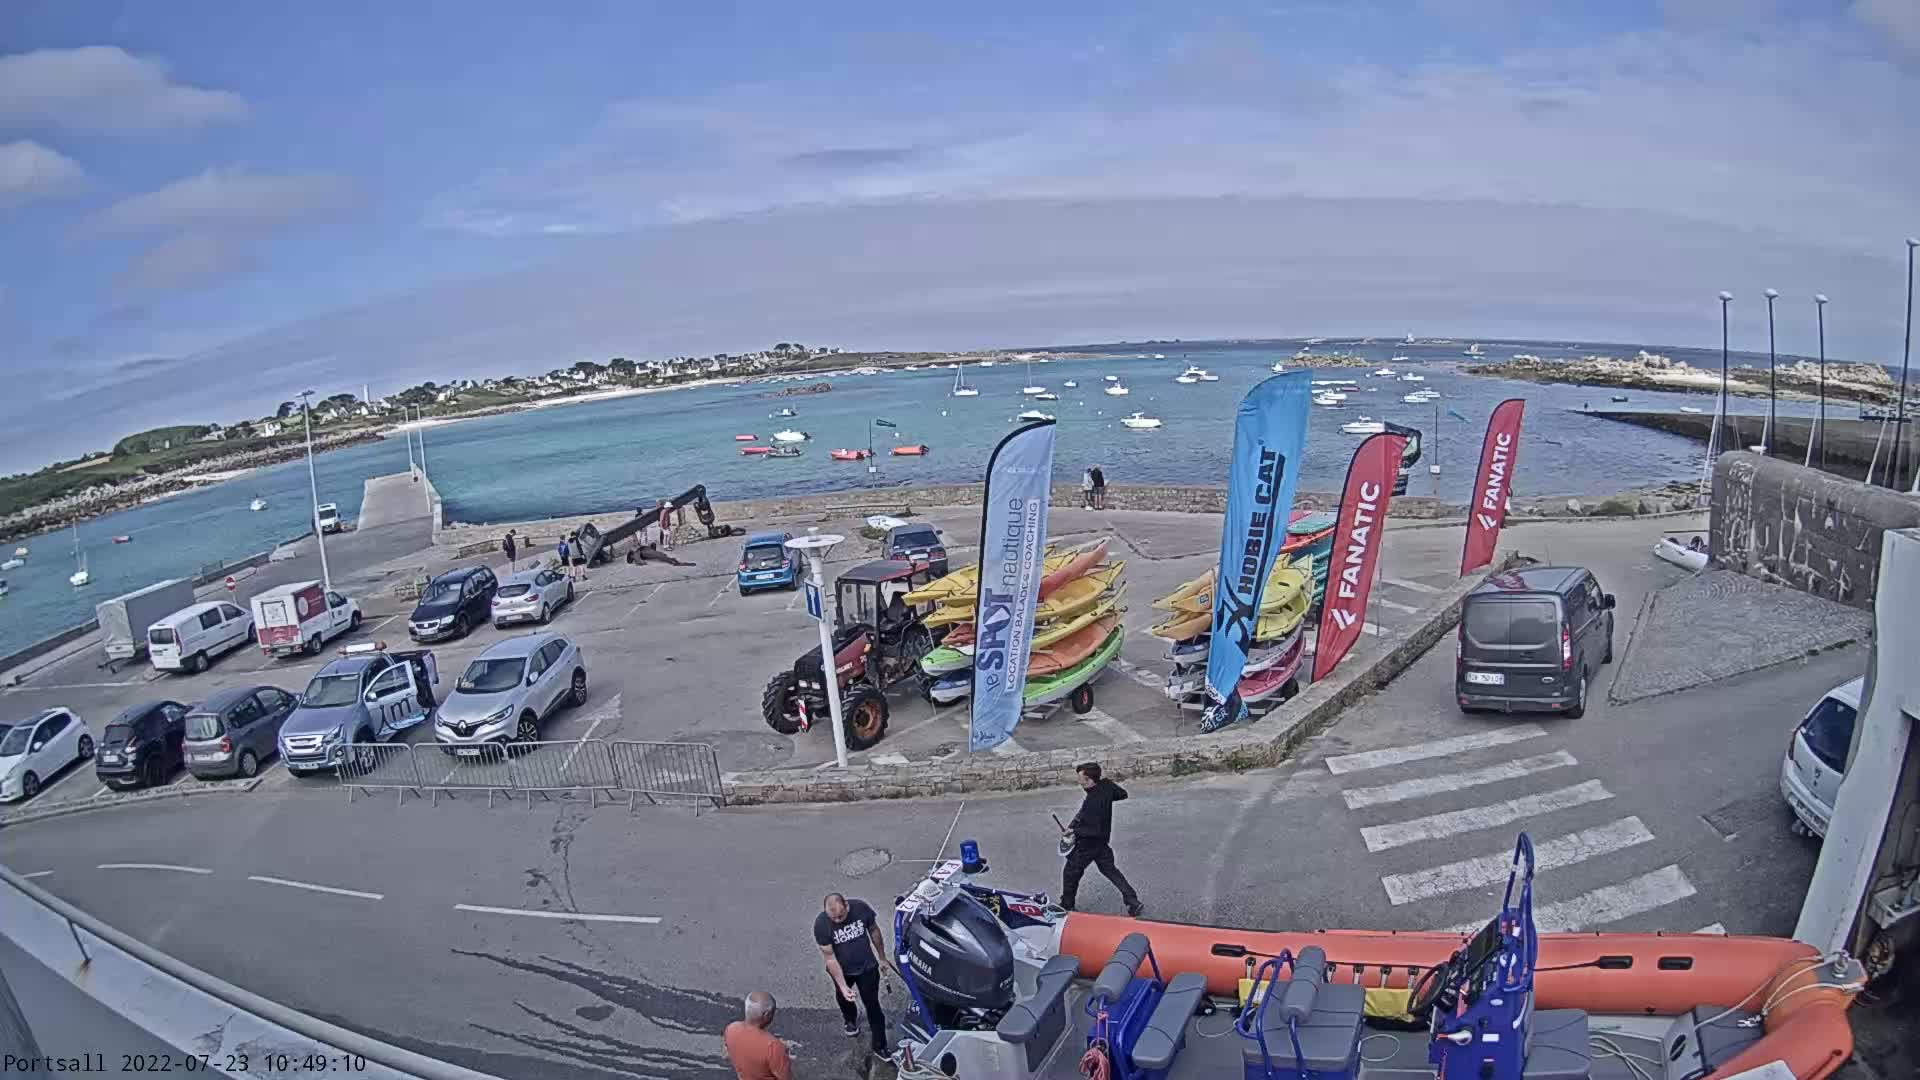 webcam Portsall